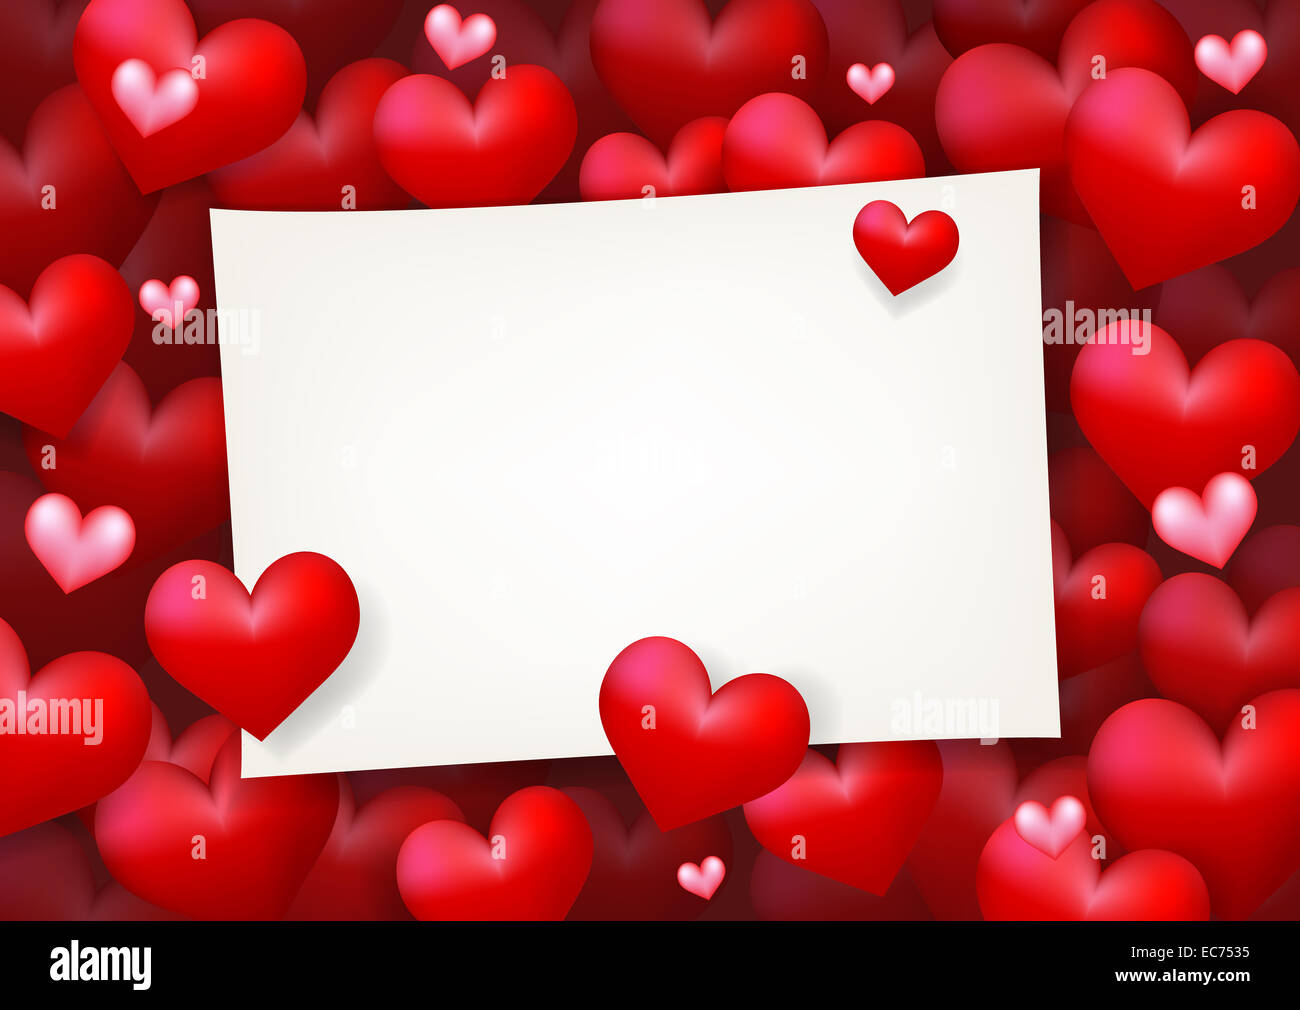 Blank paper card surrounded by floating red heart and pink love